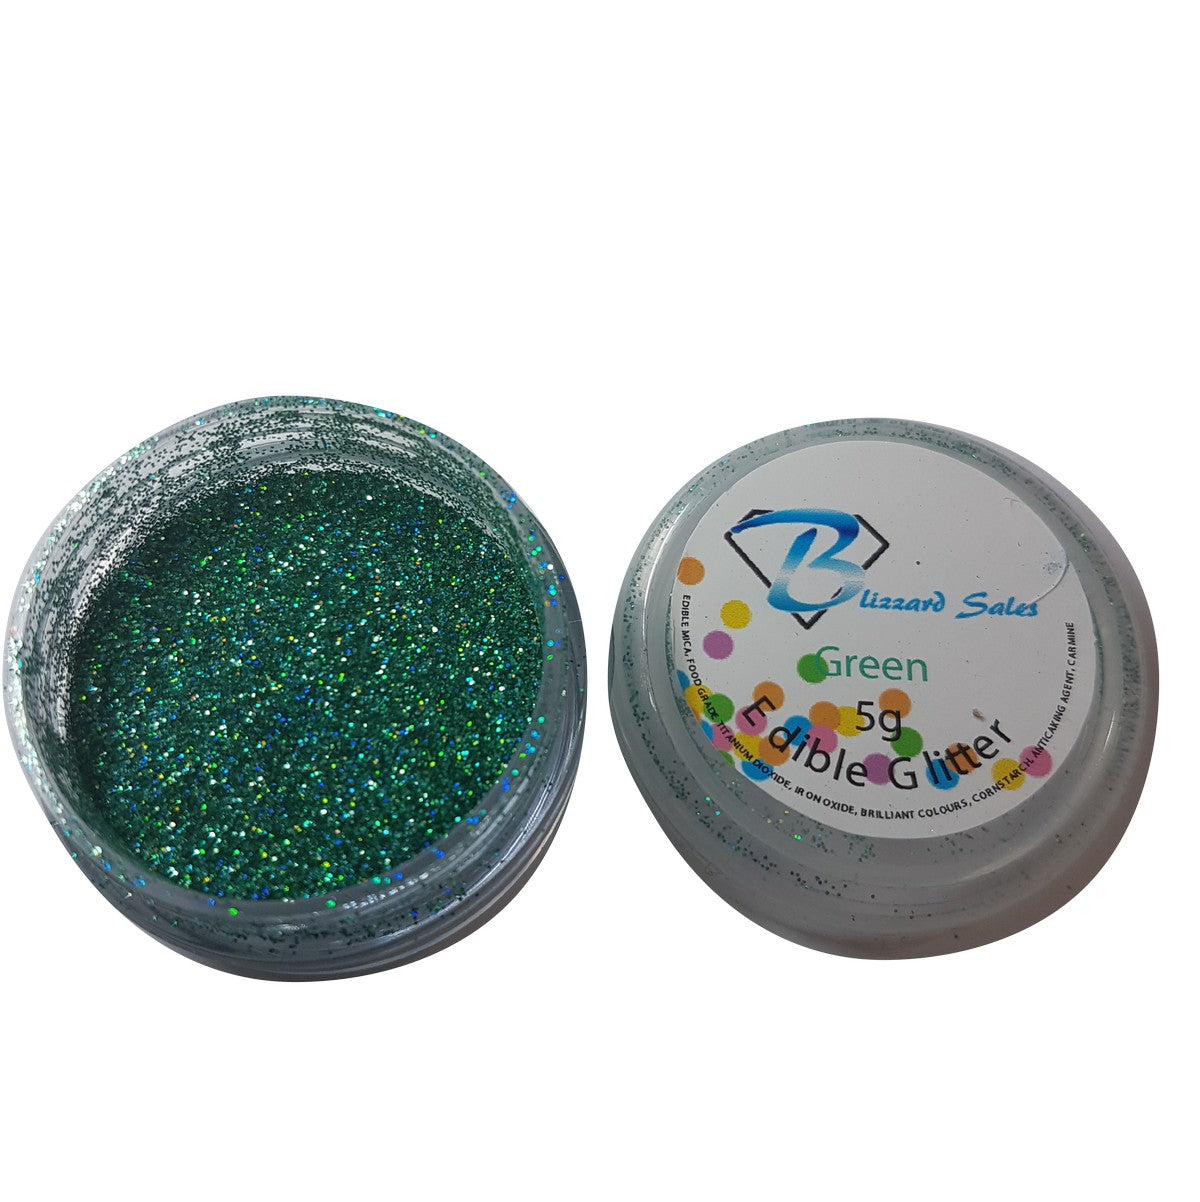 Edible Lustre Dusts and Edible Glitter - Premium Quality Edible Shimmer Powders full set